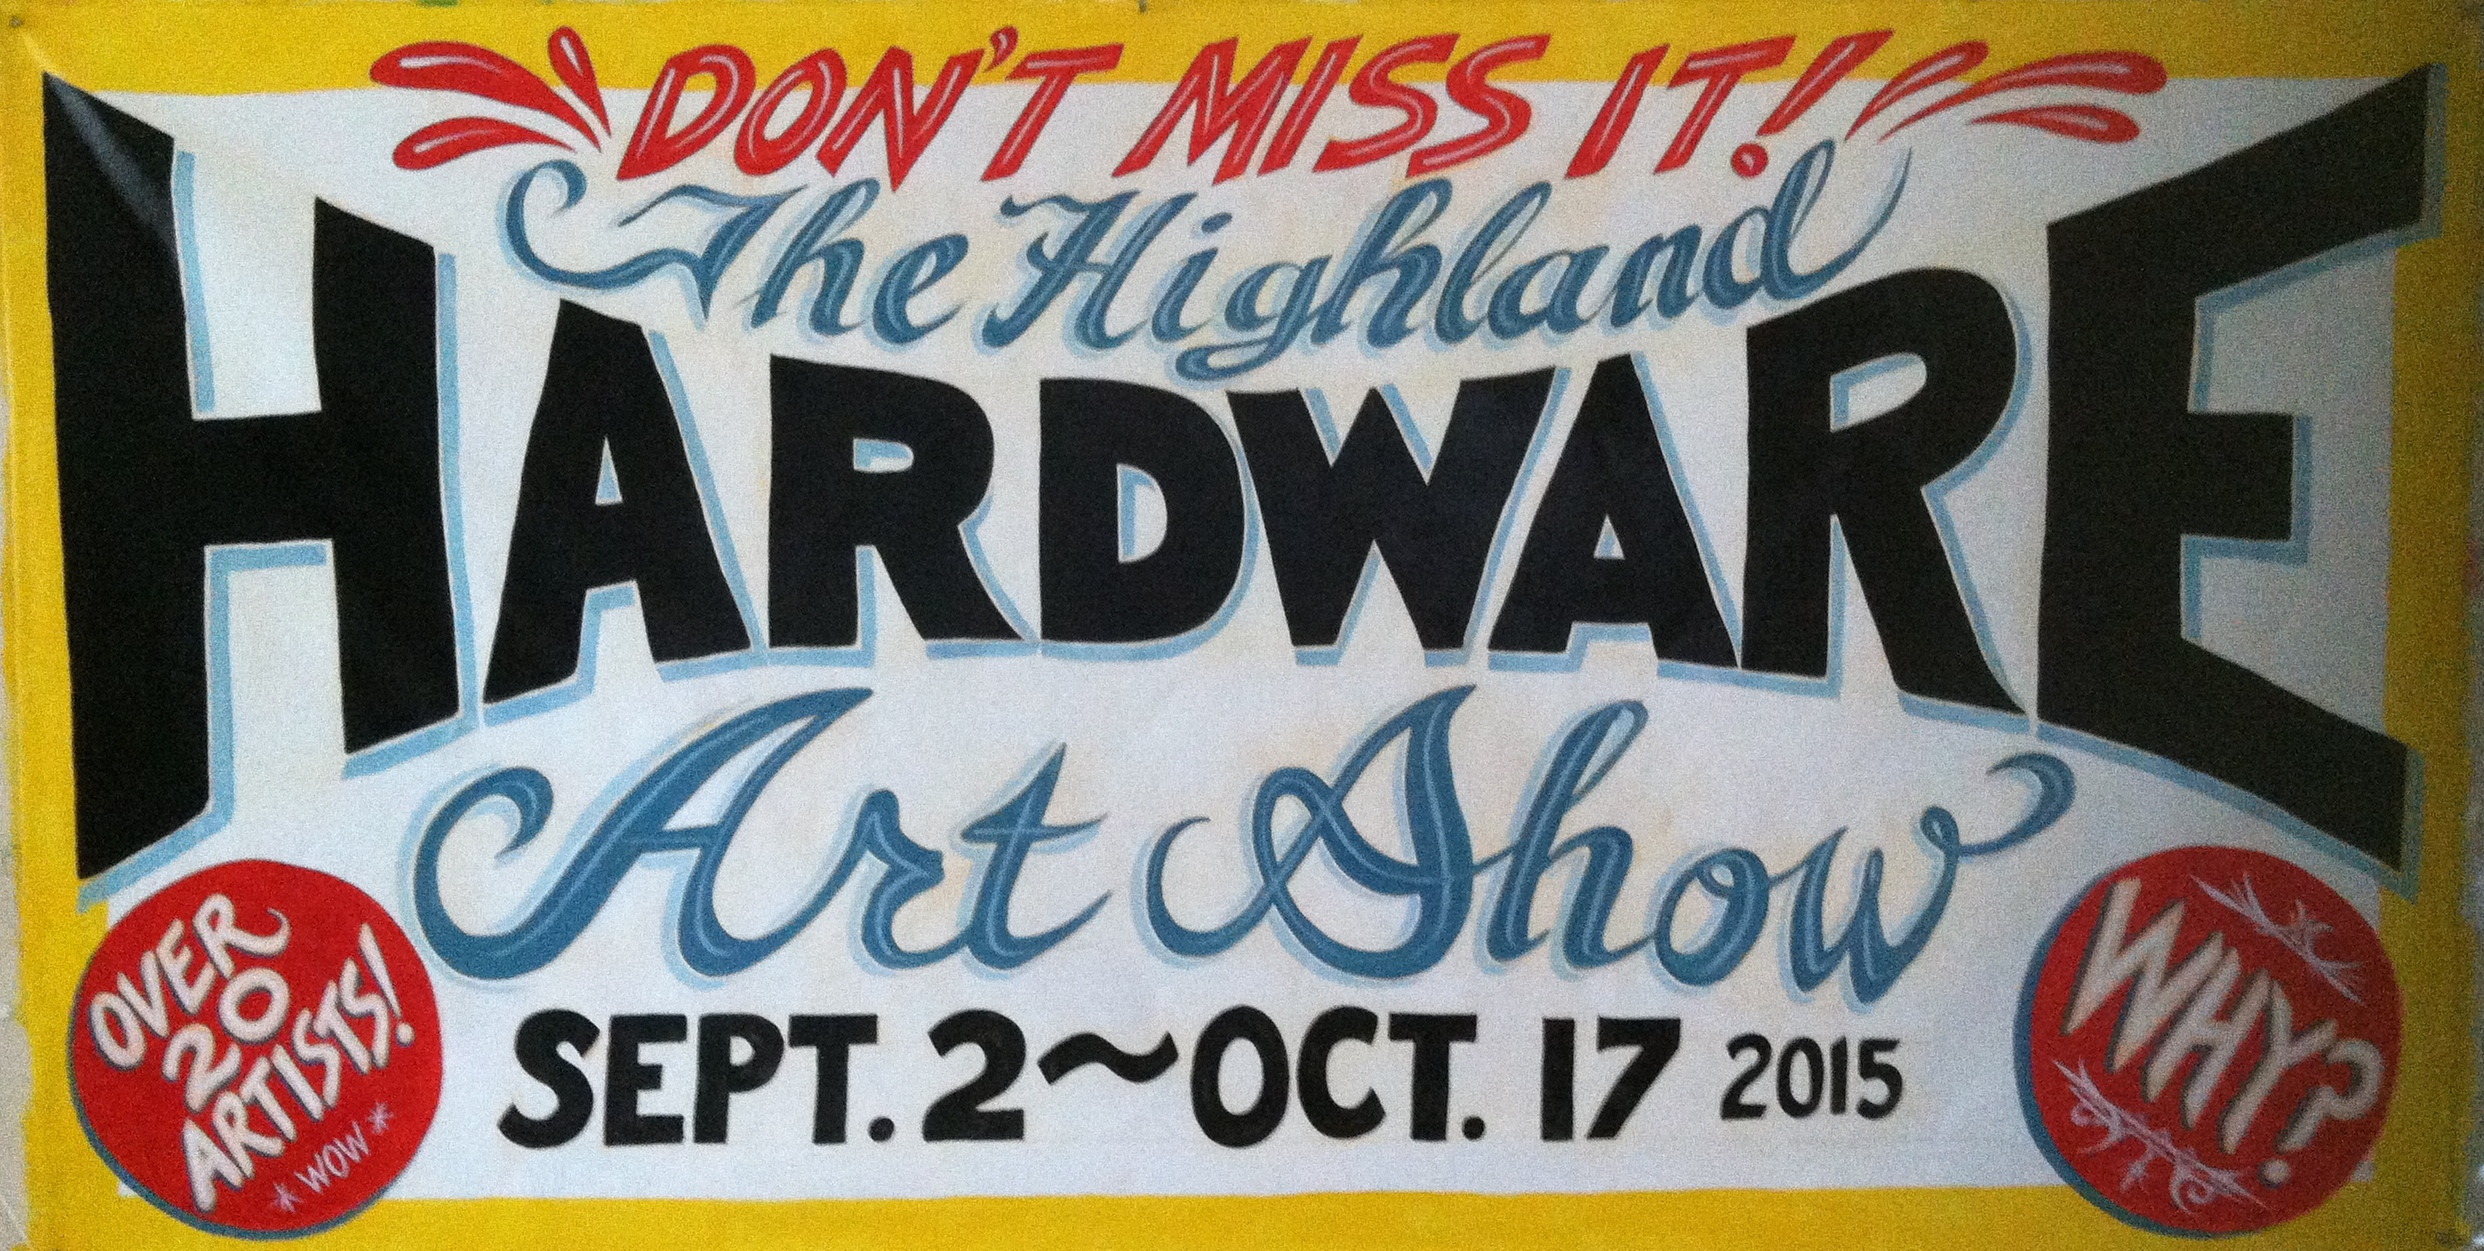 The Hardware Store Art Show